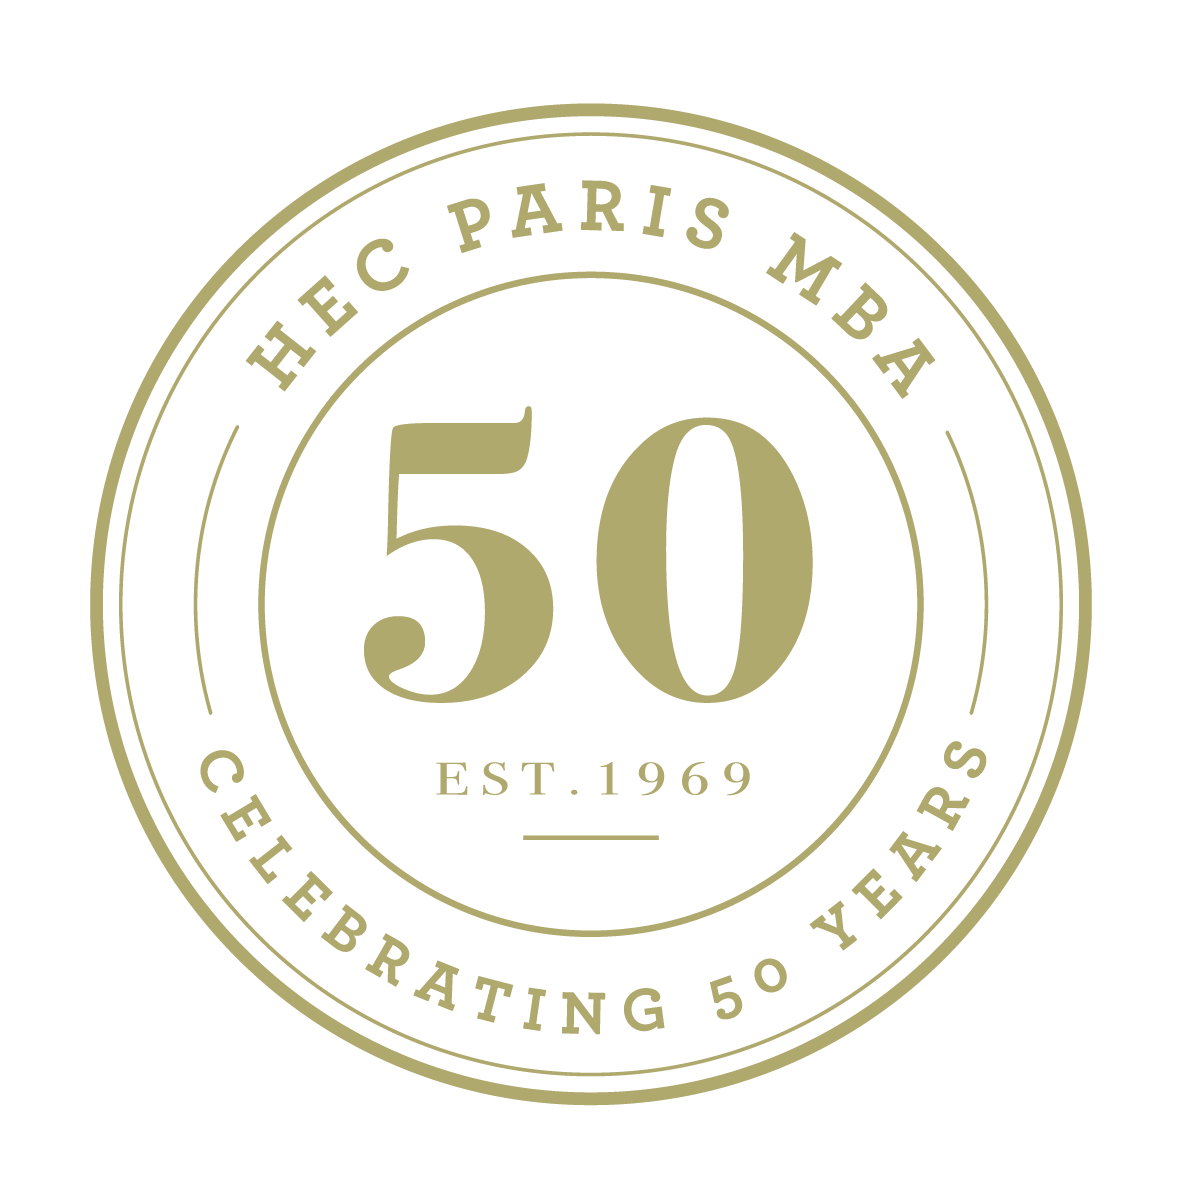 Image of 50th anniversary logo